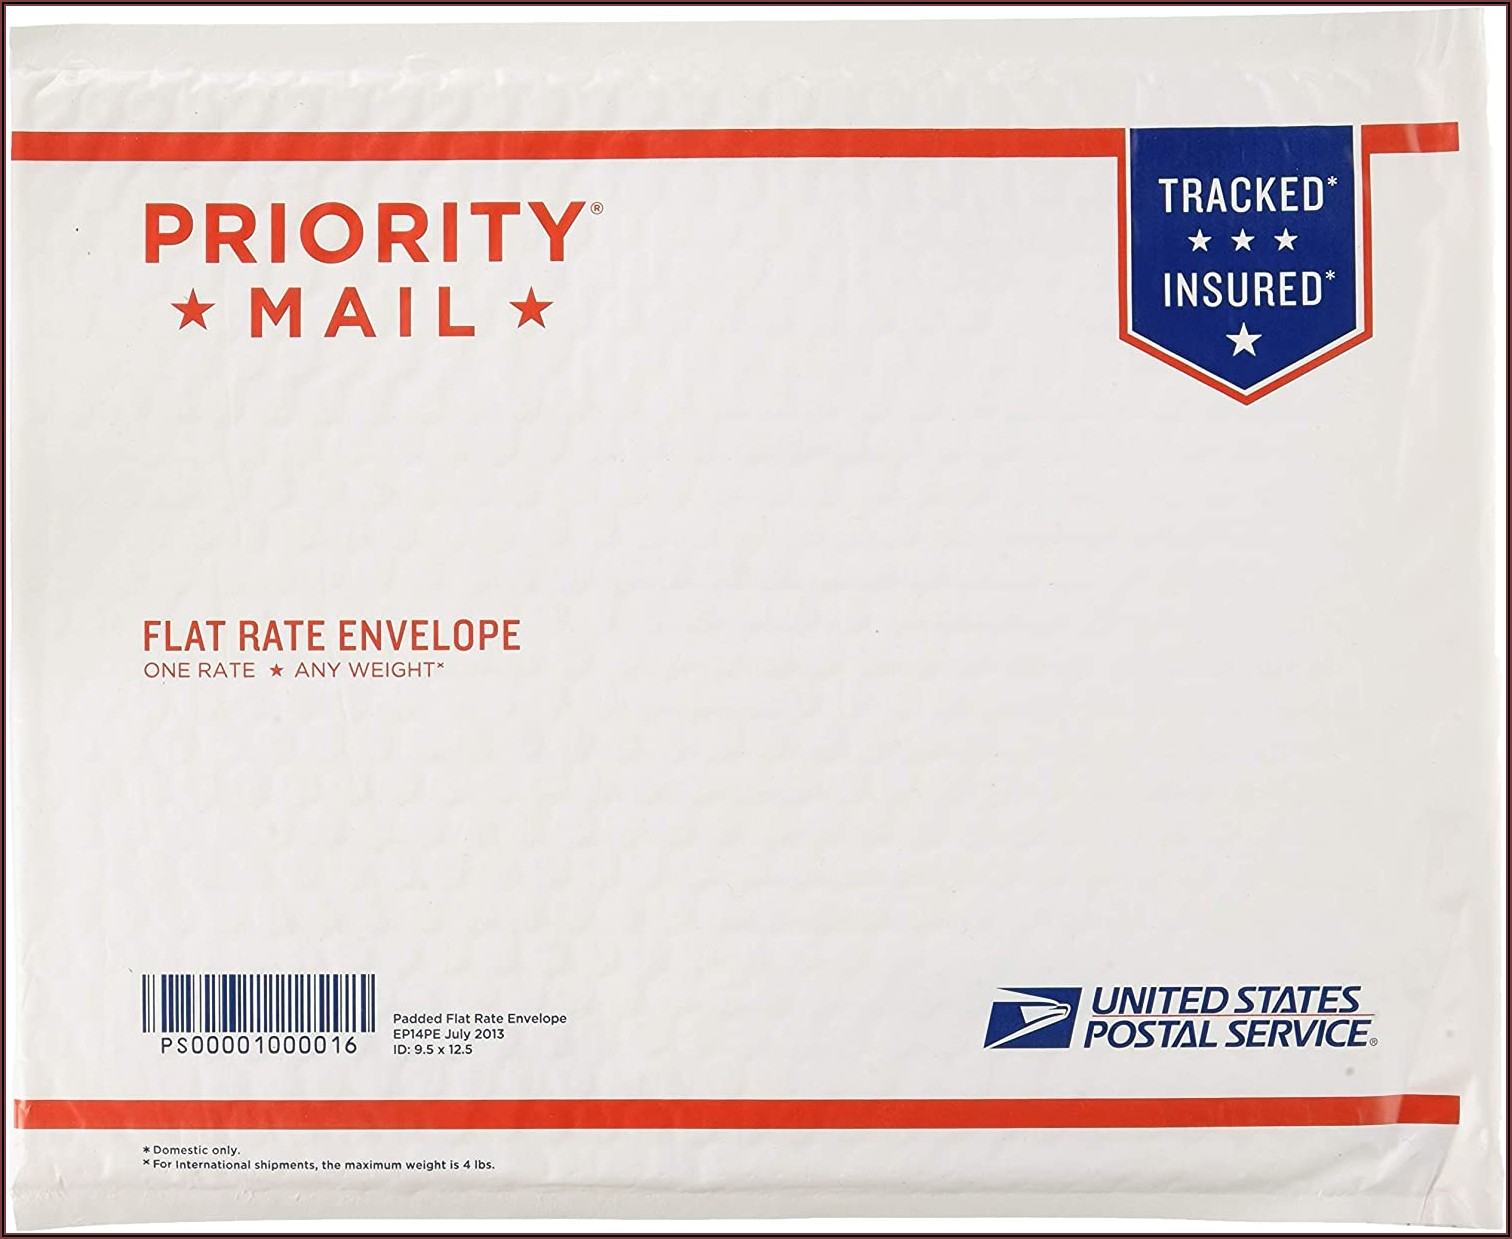 Usps Priority Mail Flat Rate Envelope Cost 2019